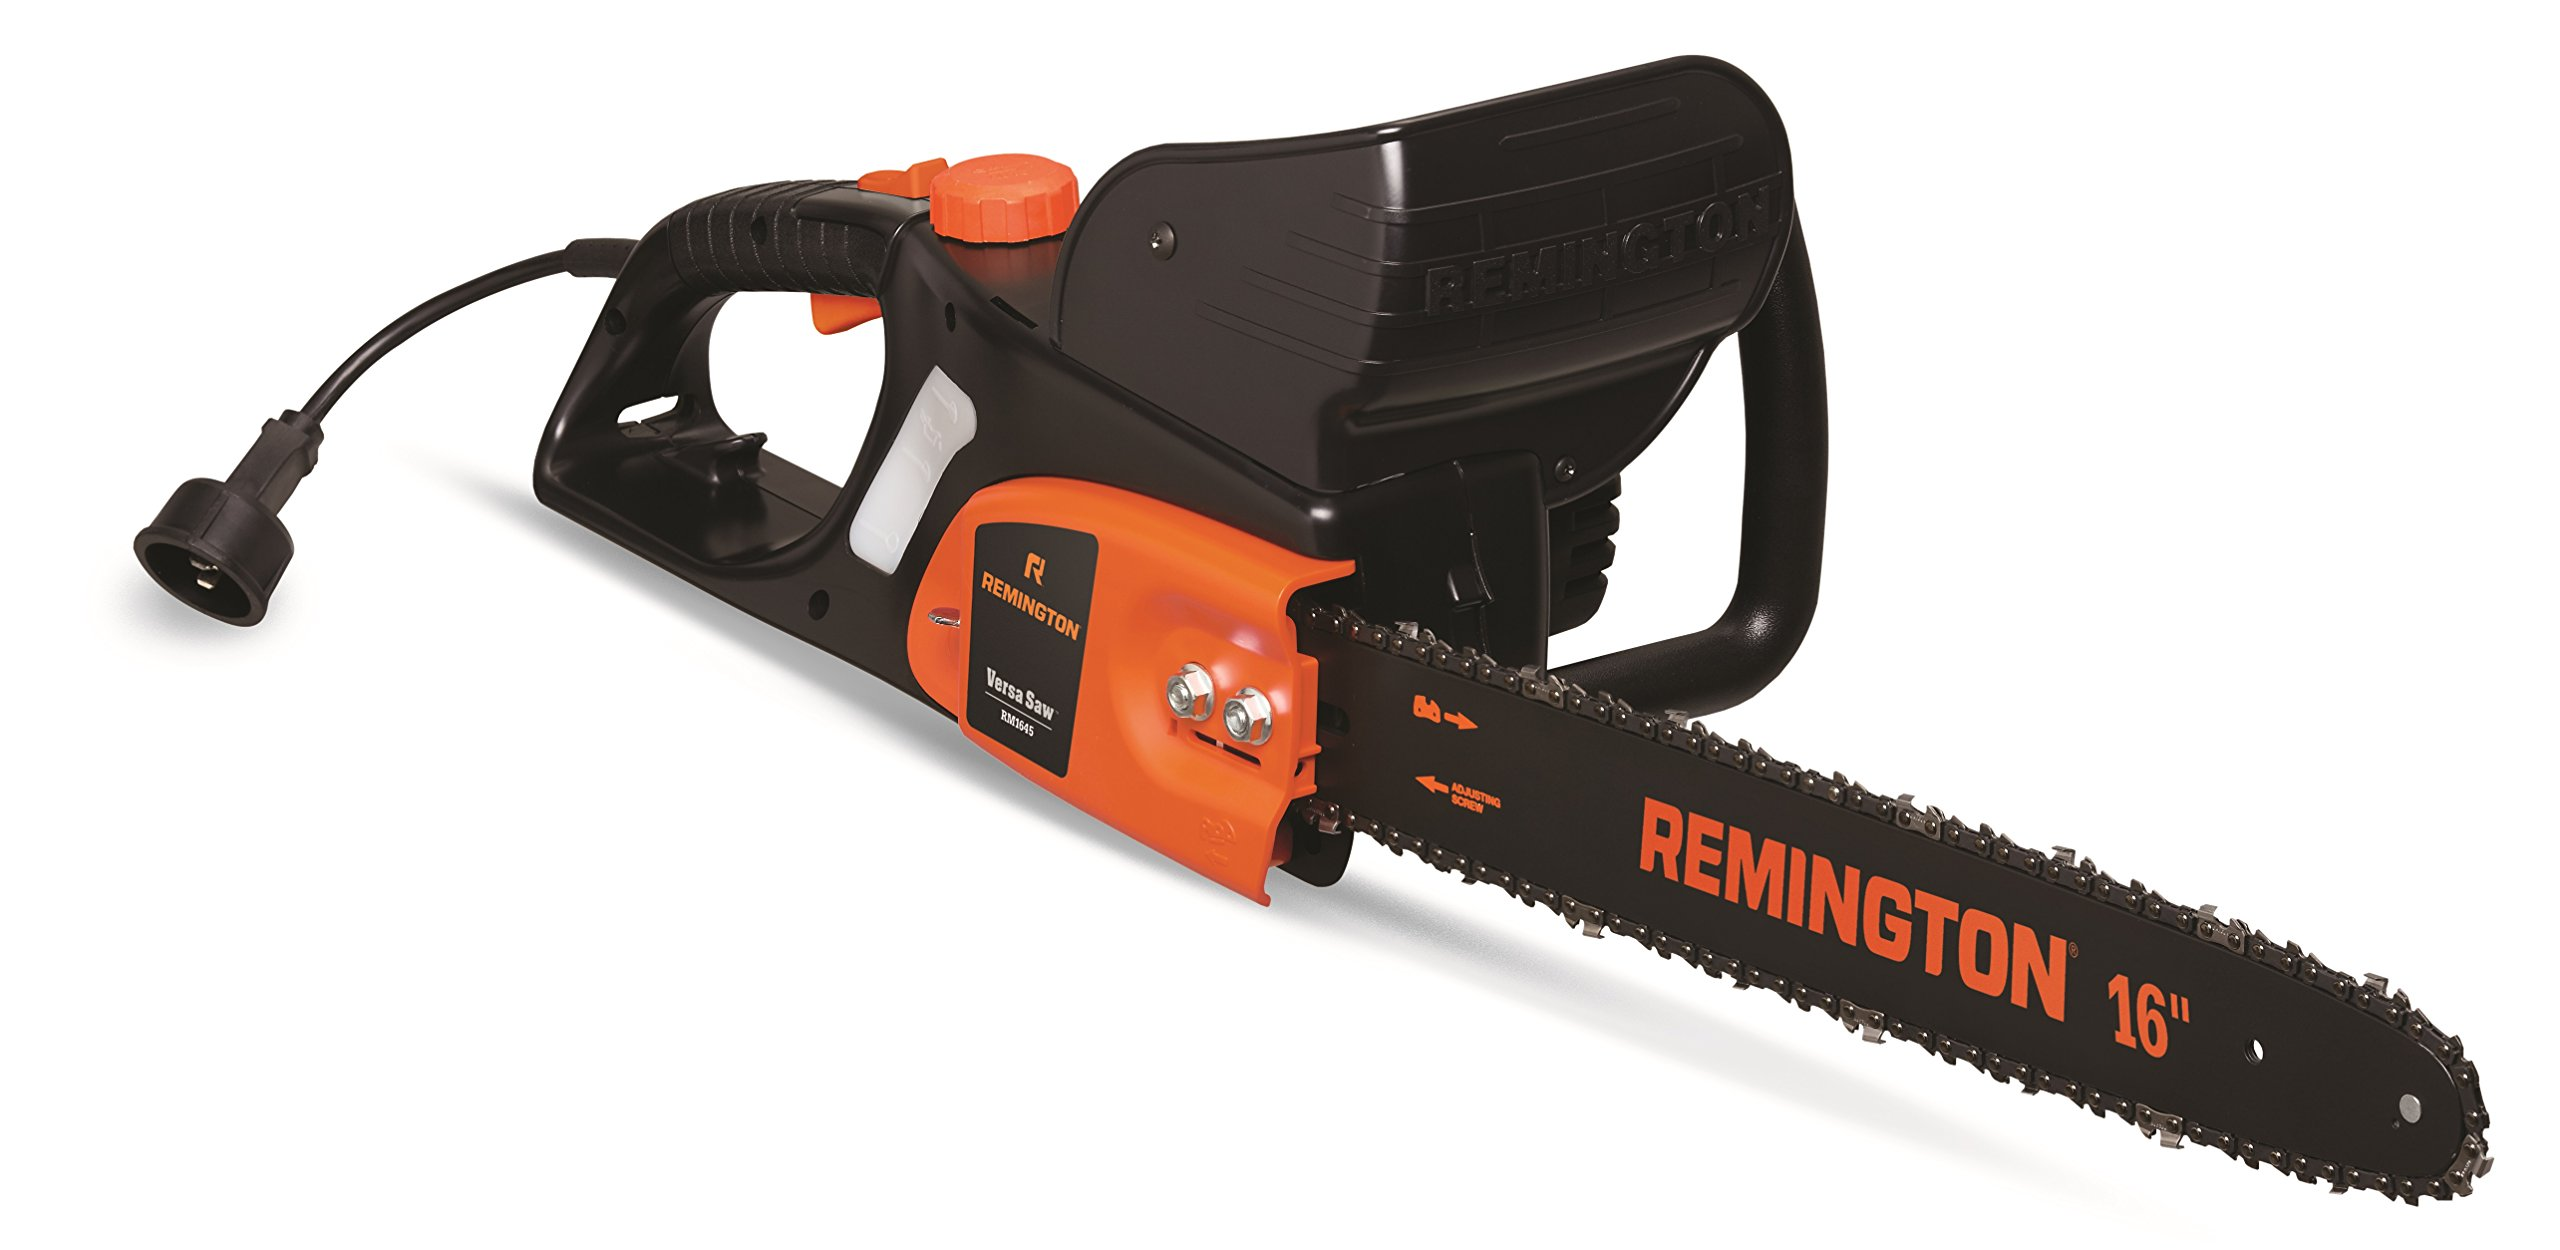 Remington rm versa saw amp inch electric